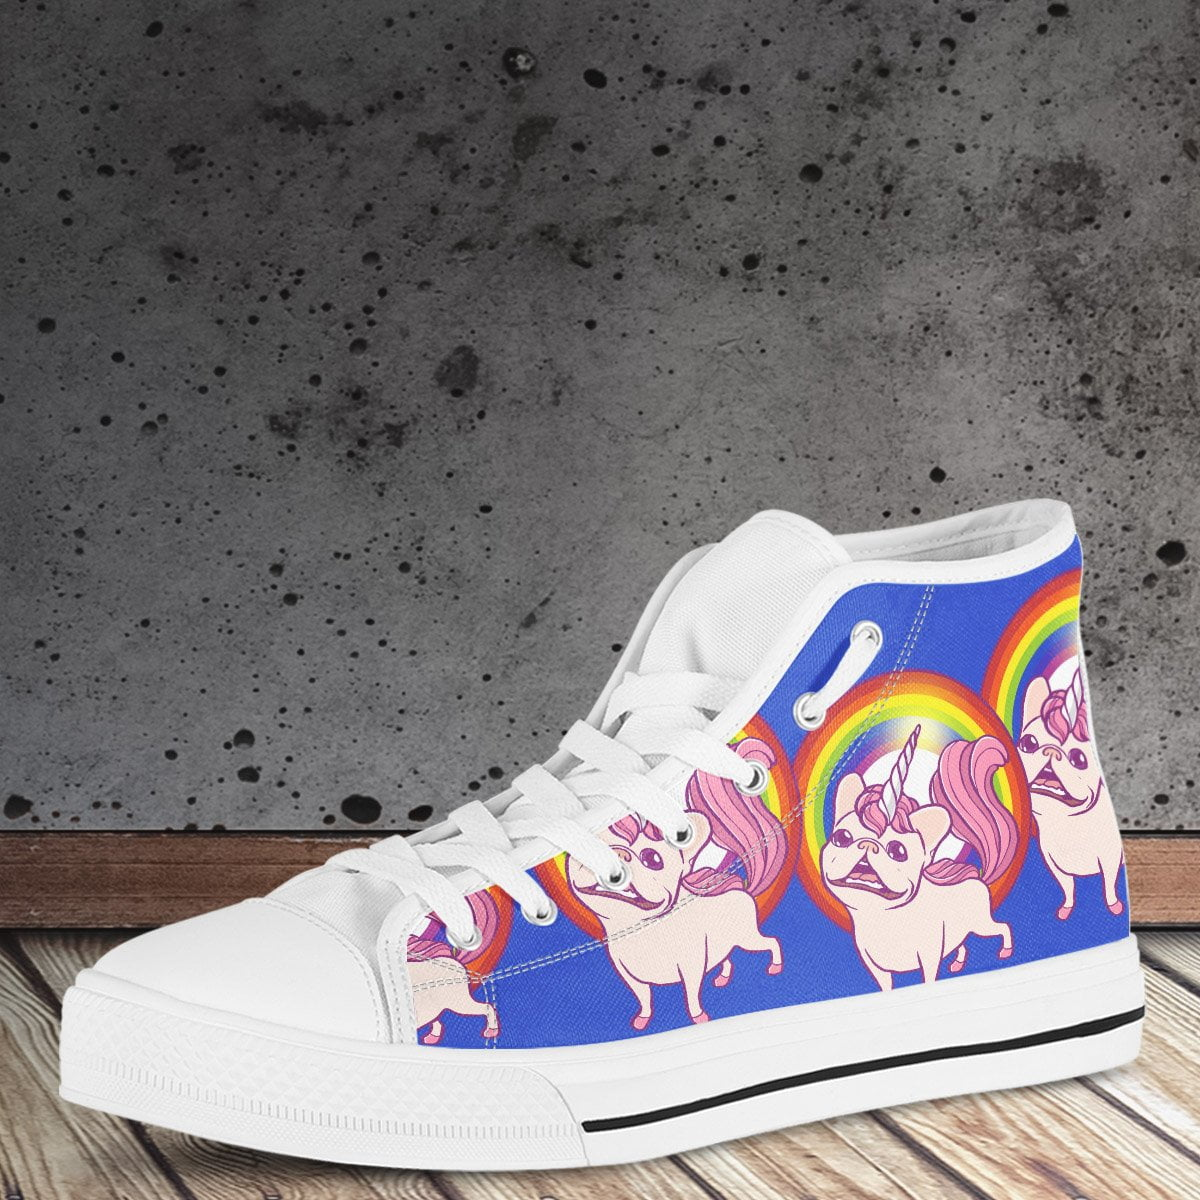 High Top Shoe - Unicorne Frenchie - frenchie Shop